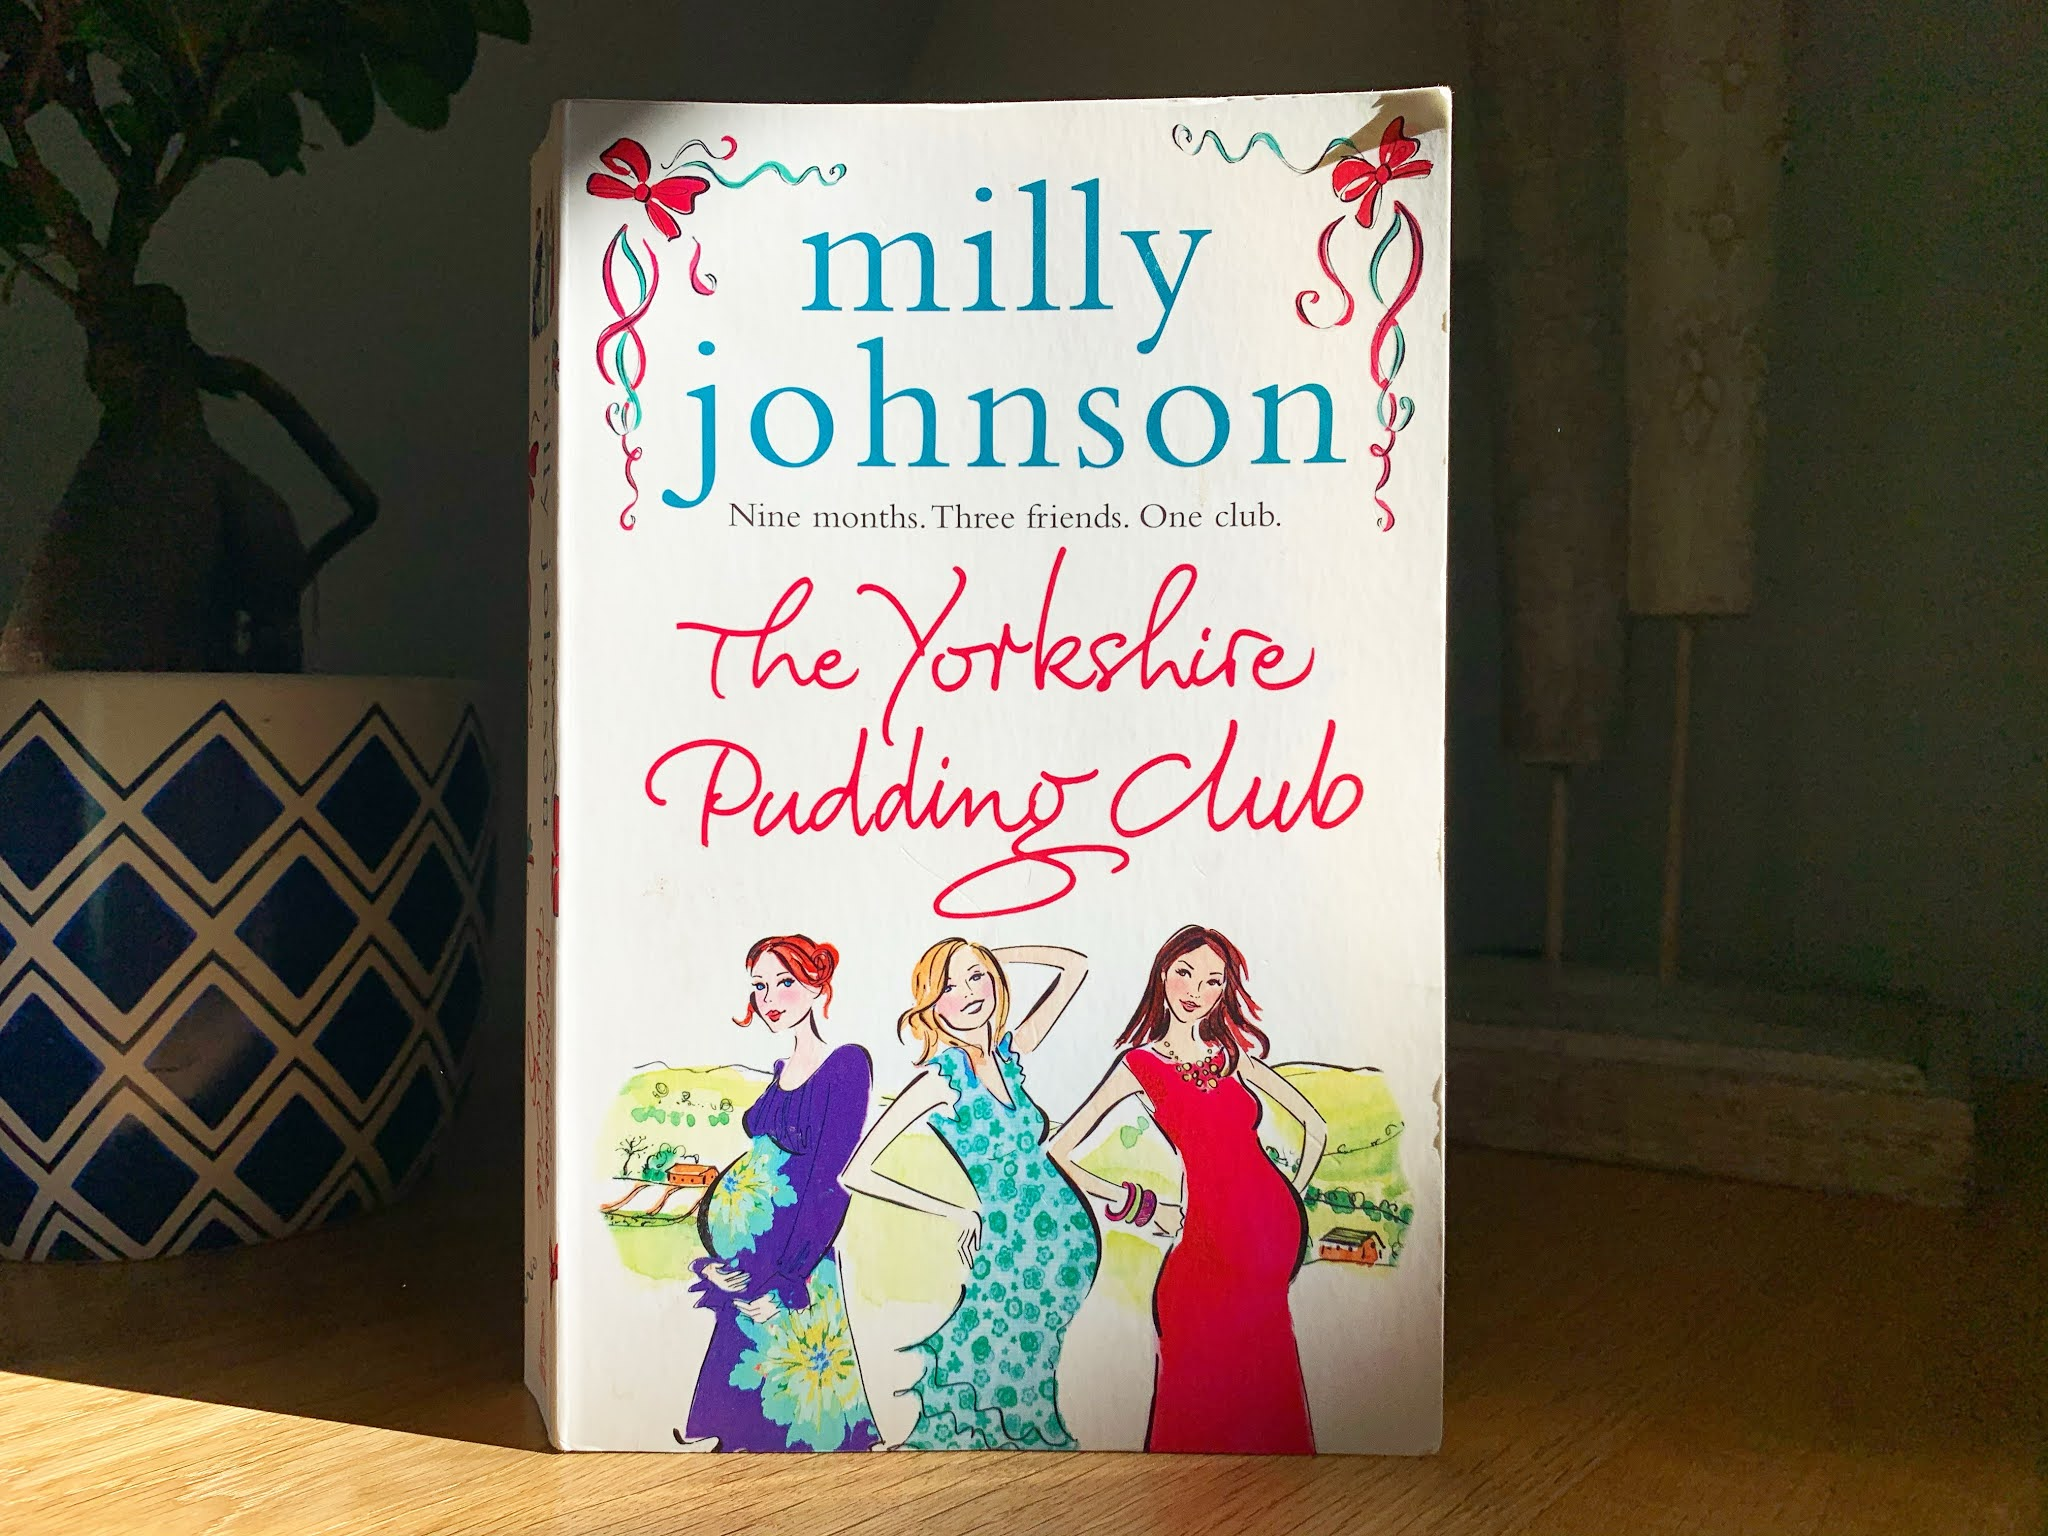 The Yorkshire Pudding Club by Milly Johnson on a shelf